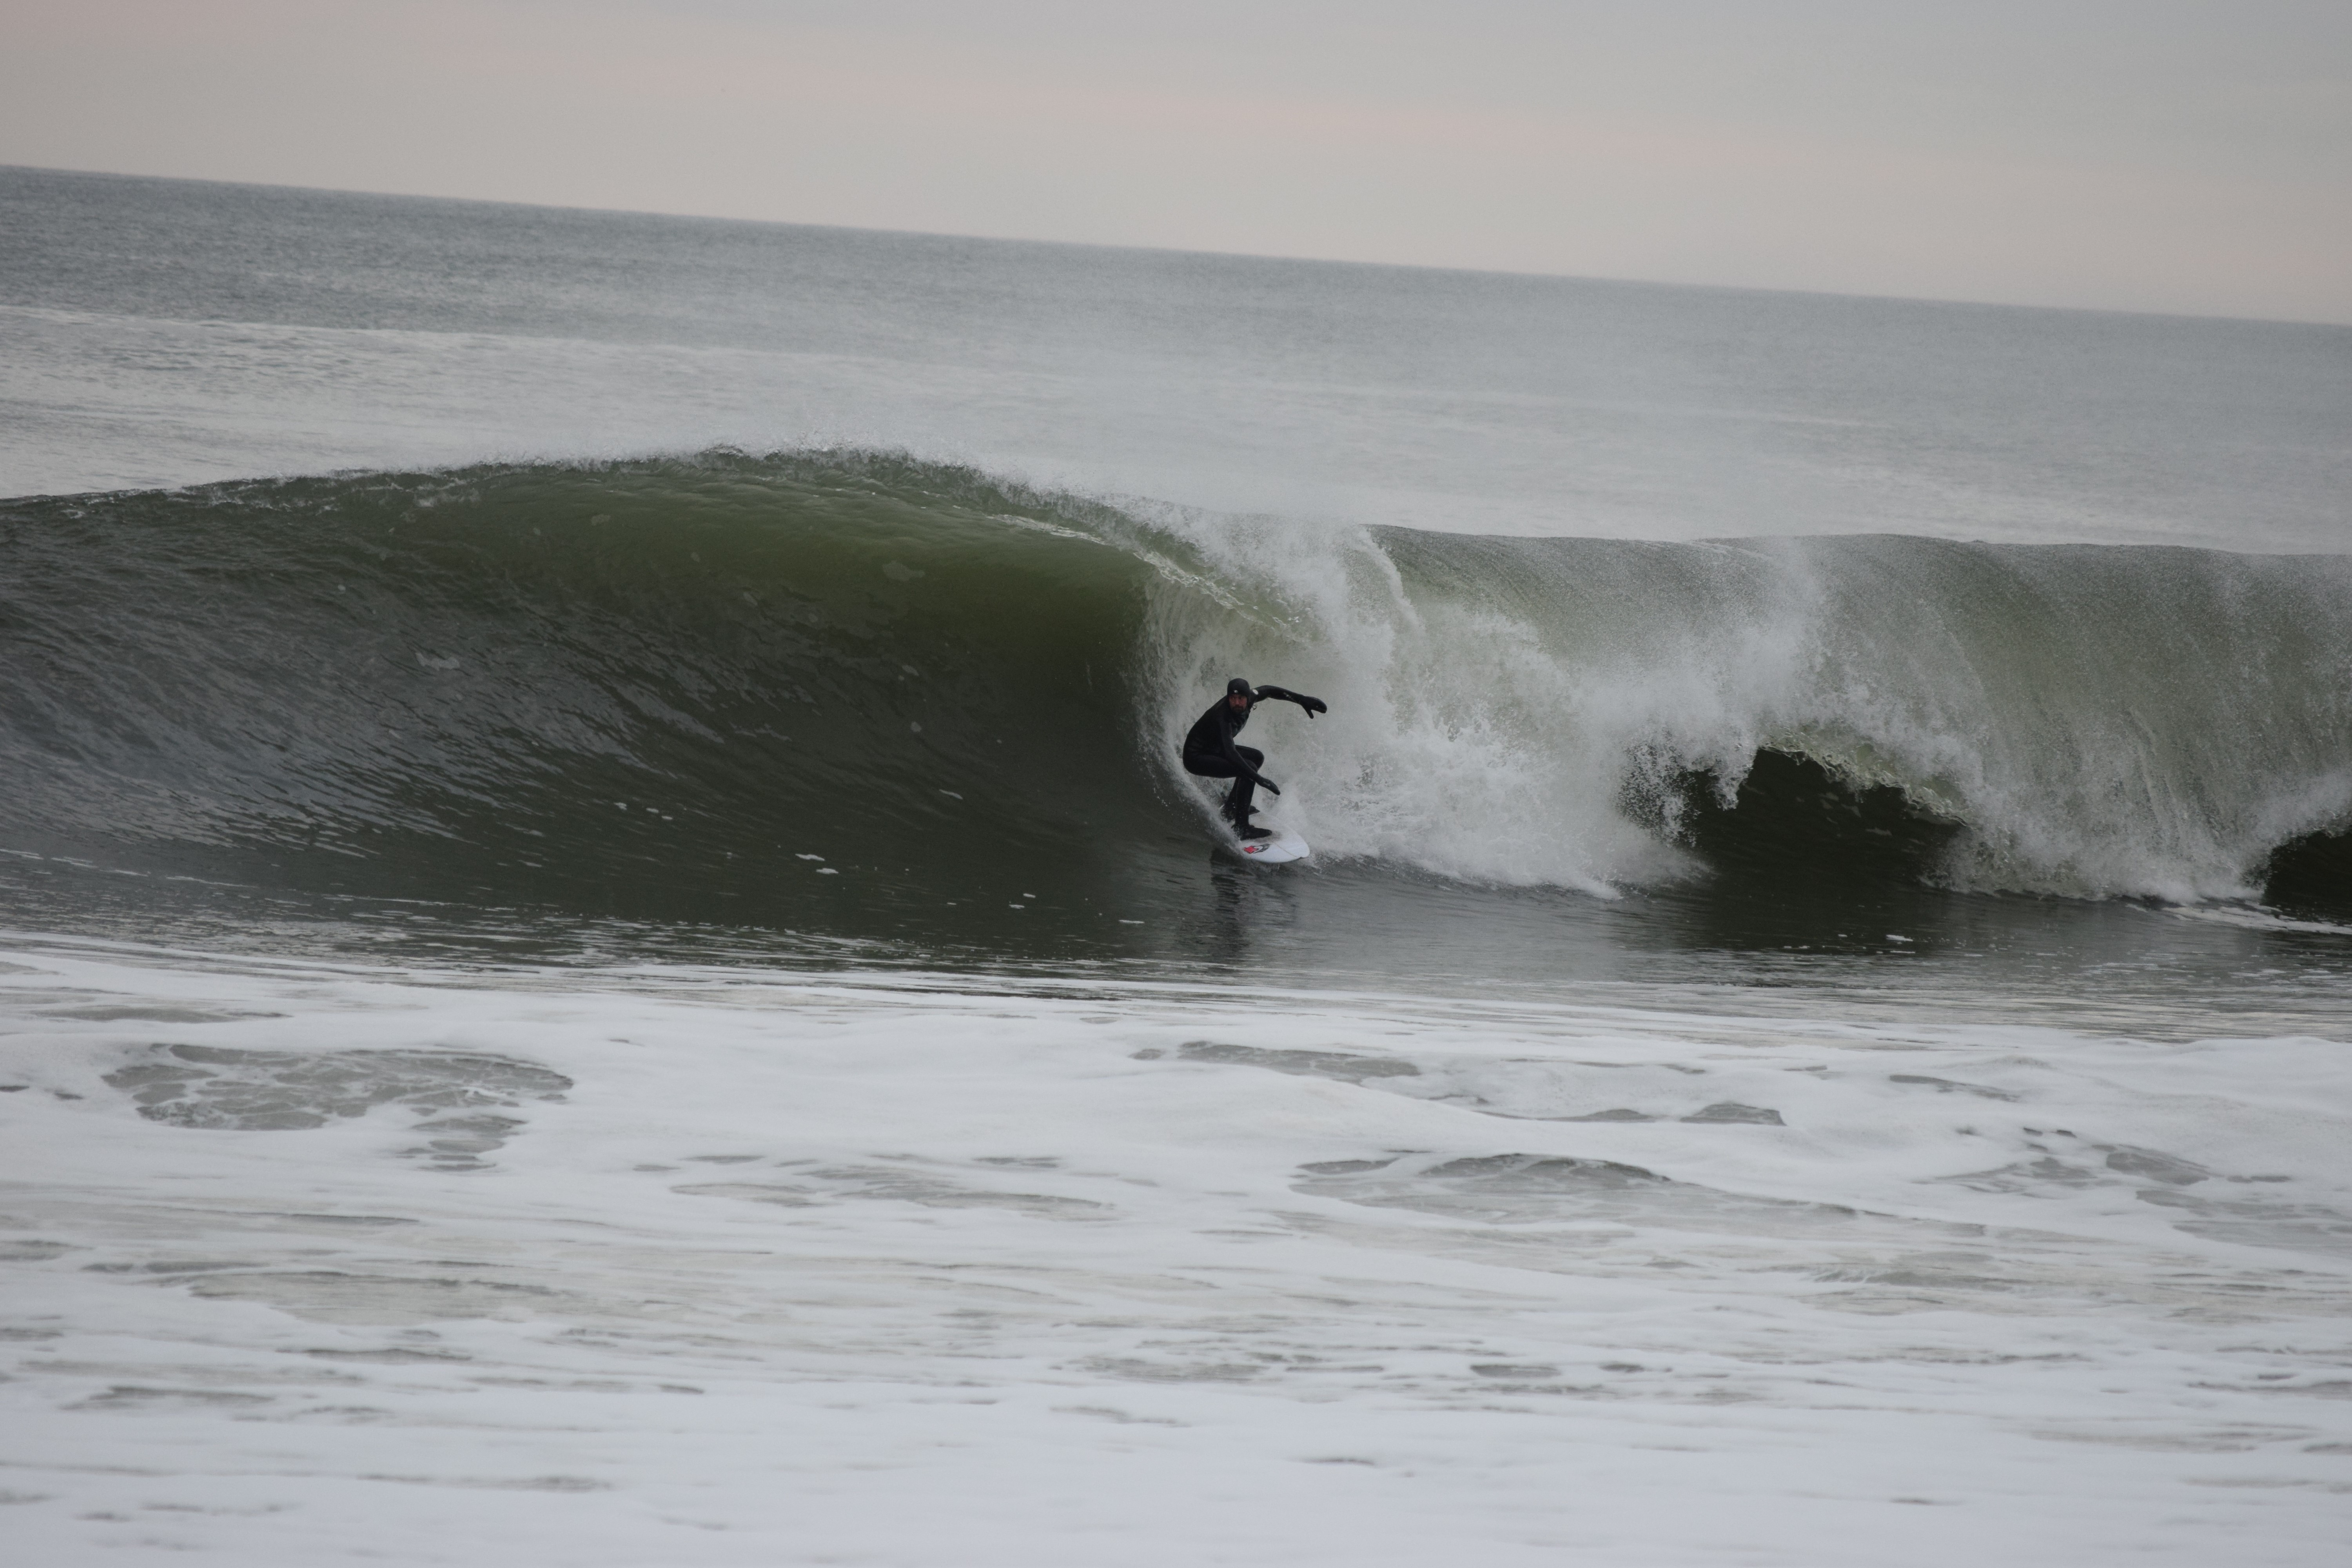 8 weeks after surgery, dropping in to a big swell on the NJ shore.  He had a displaced femoral neck fracture from a skateboarding accident in Denver, while visiting CO, requiring emergent surgery and internal screw fixation.